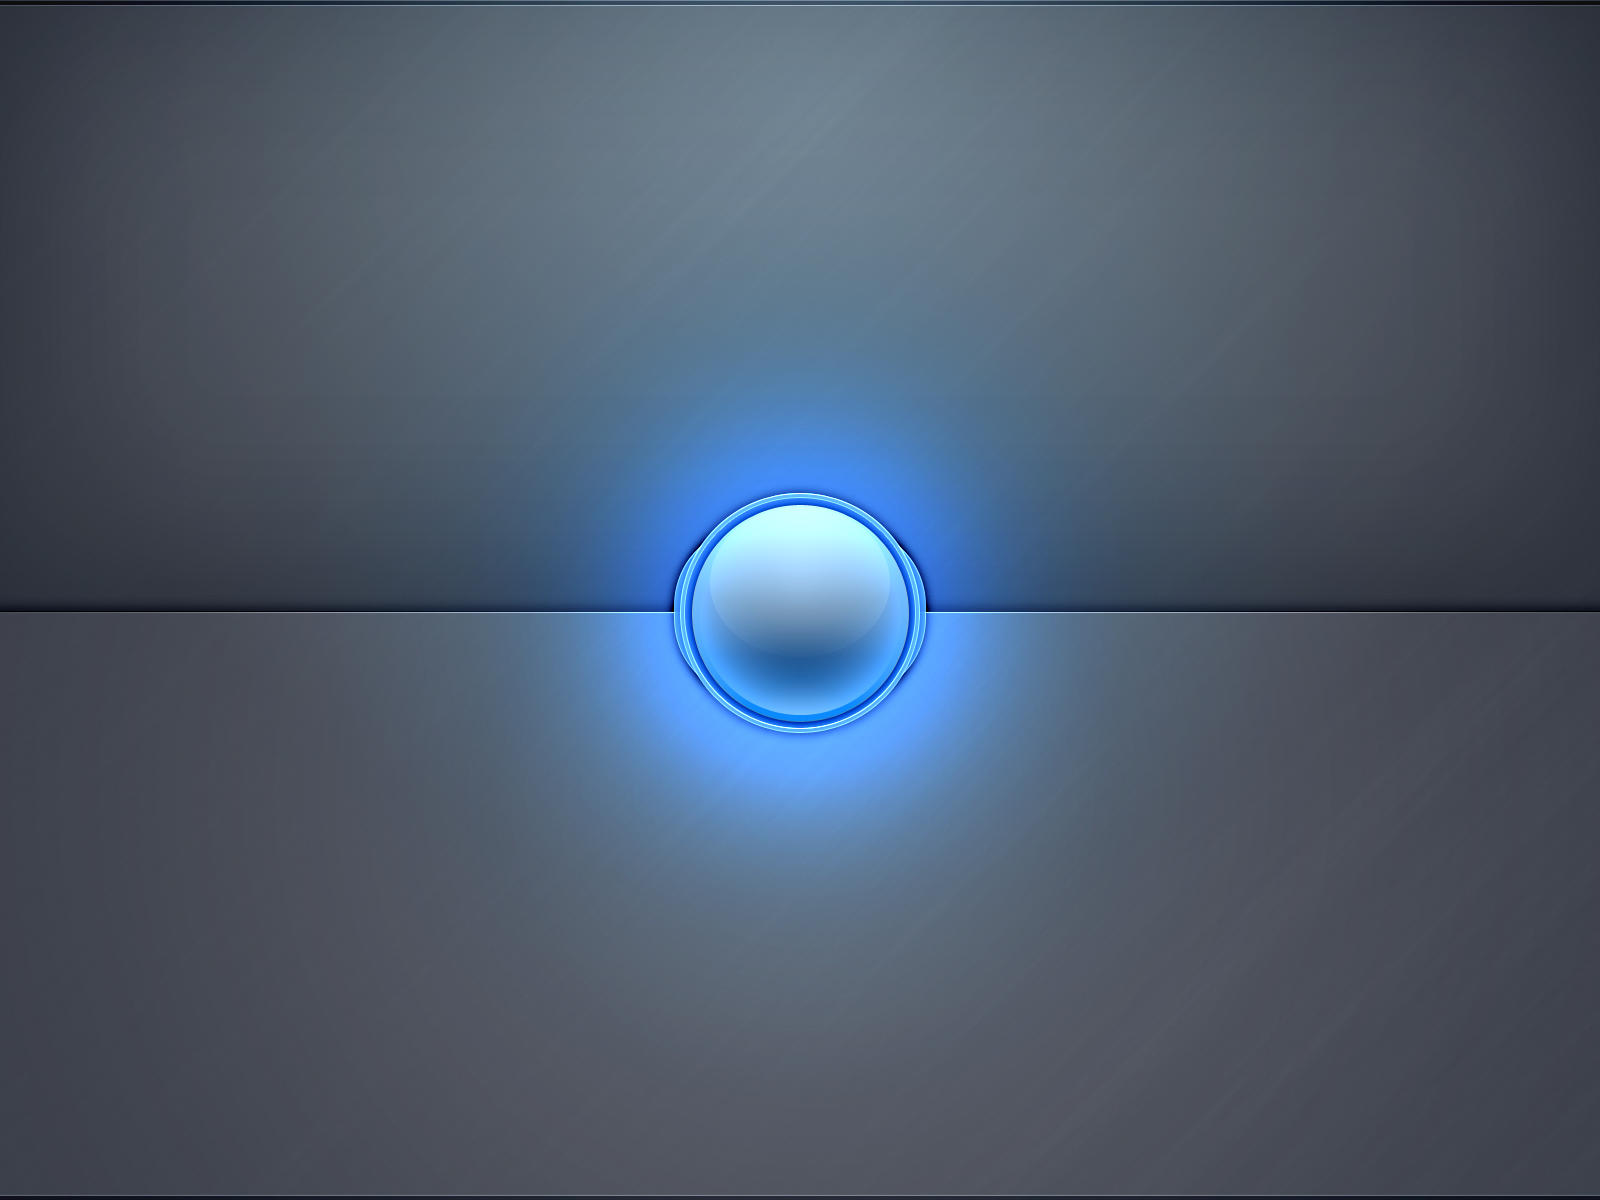 Voided Orb Wallpaper 1600x1200